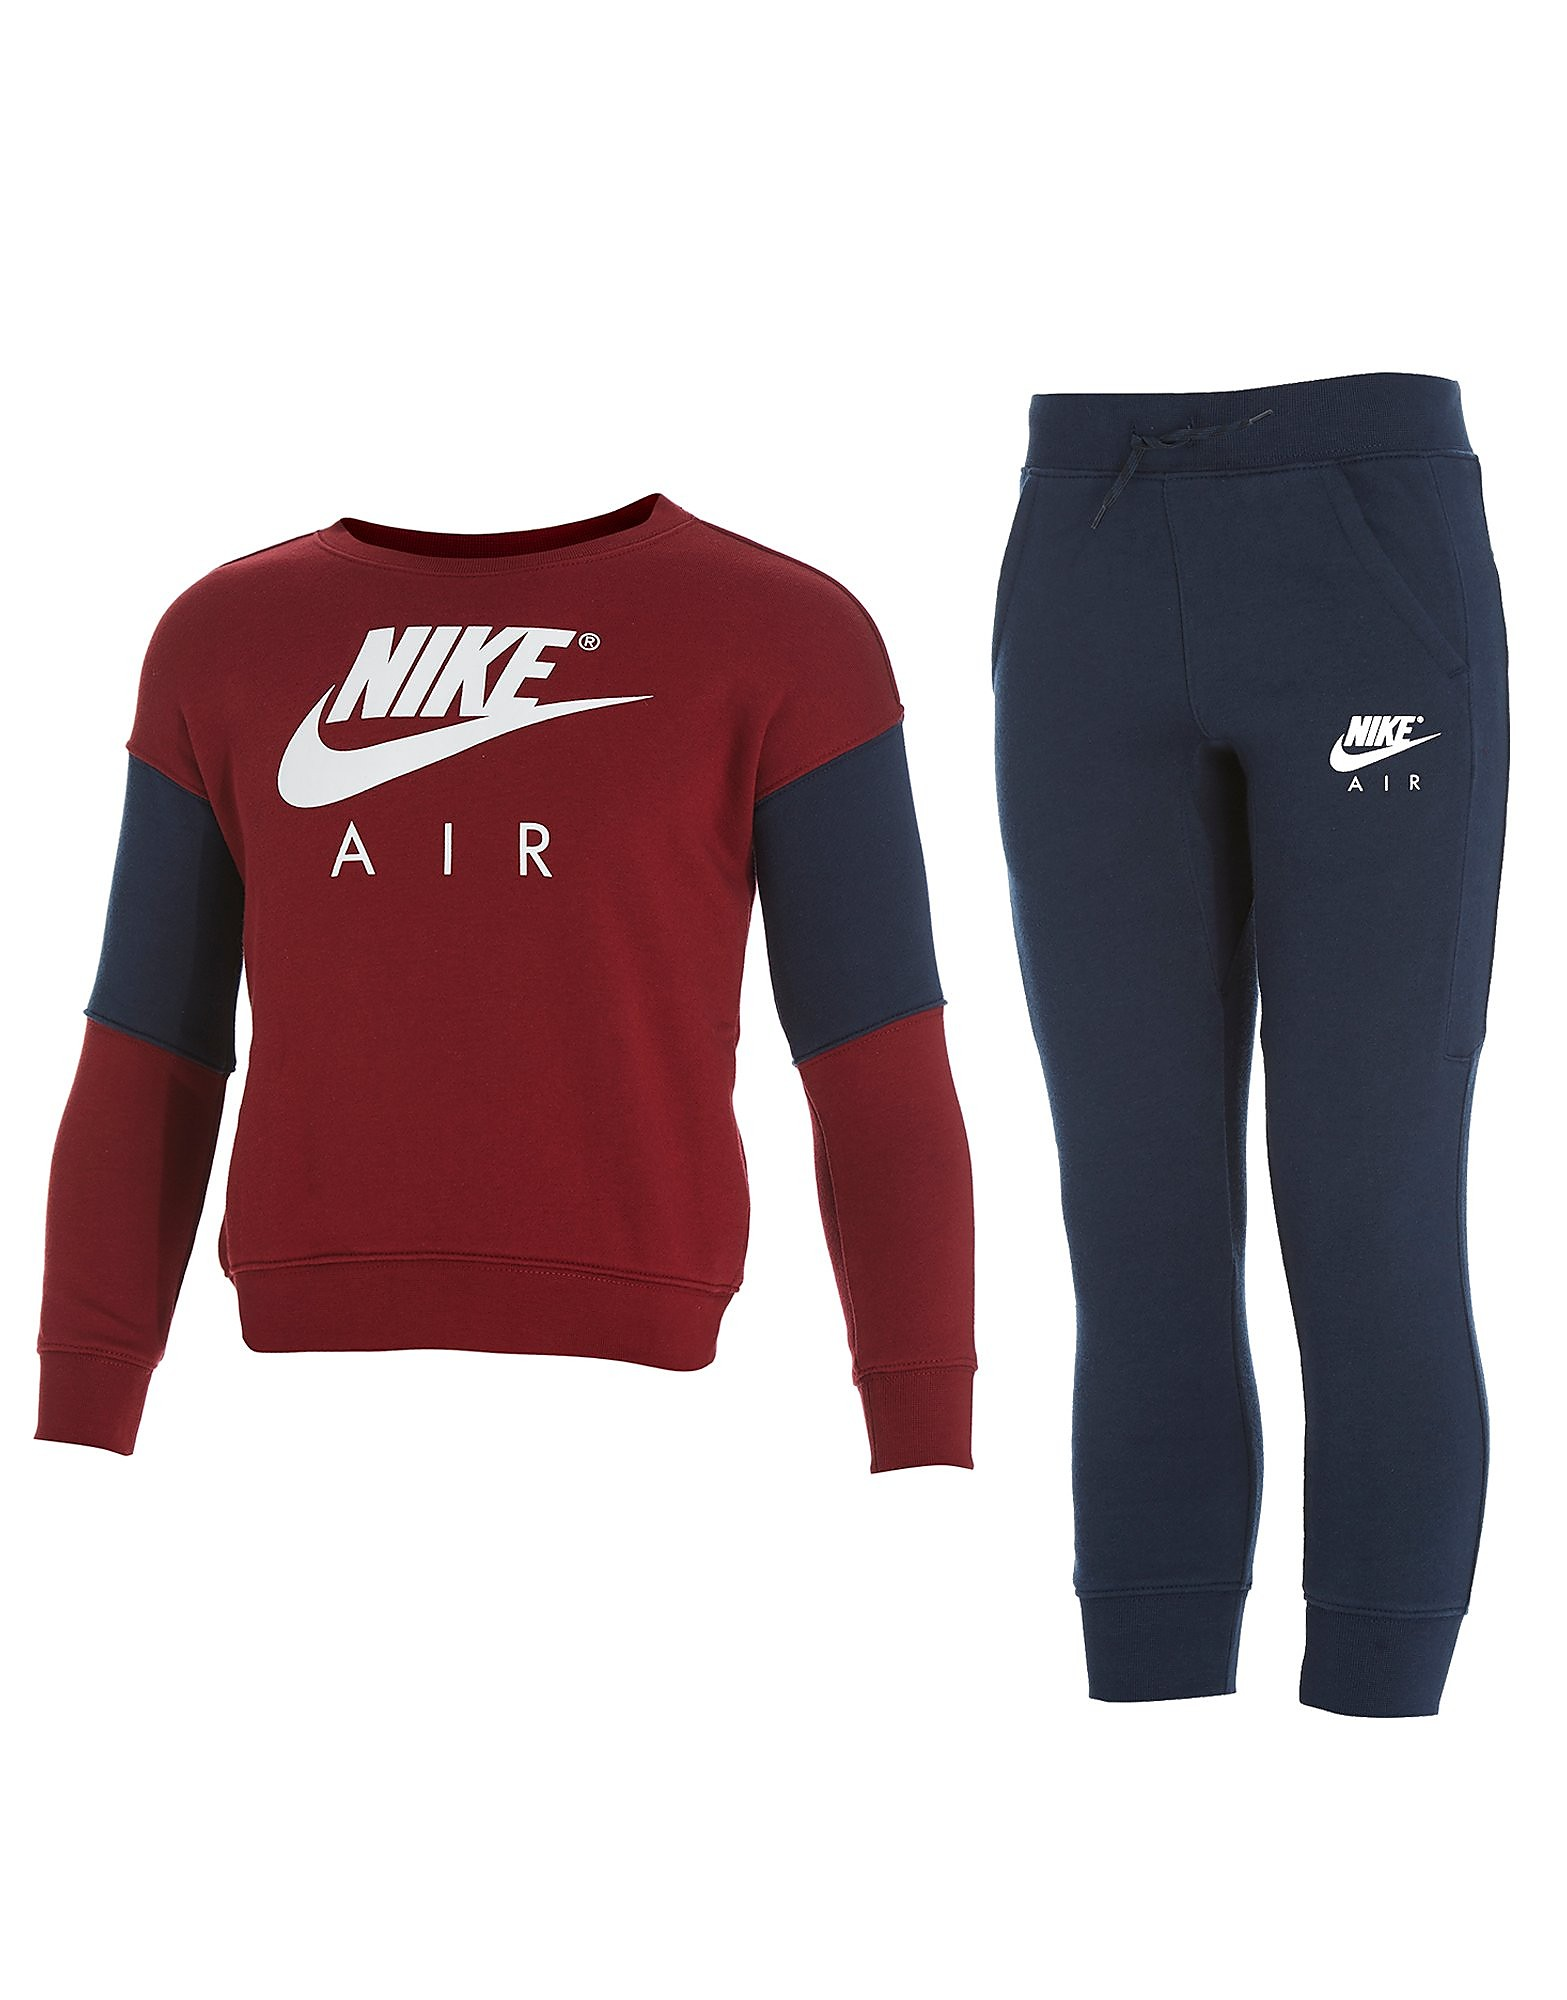 Nike Air Crew Suit Children